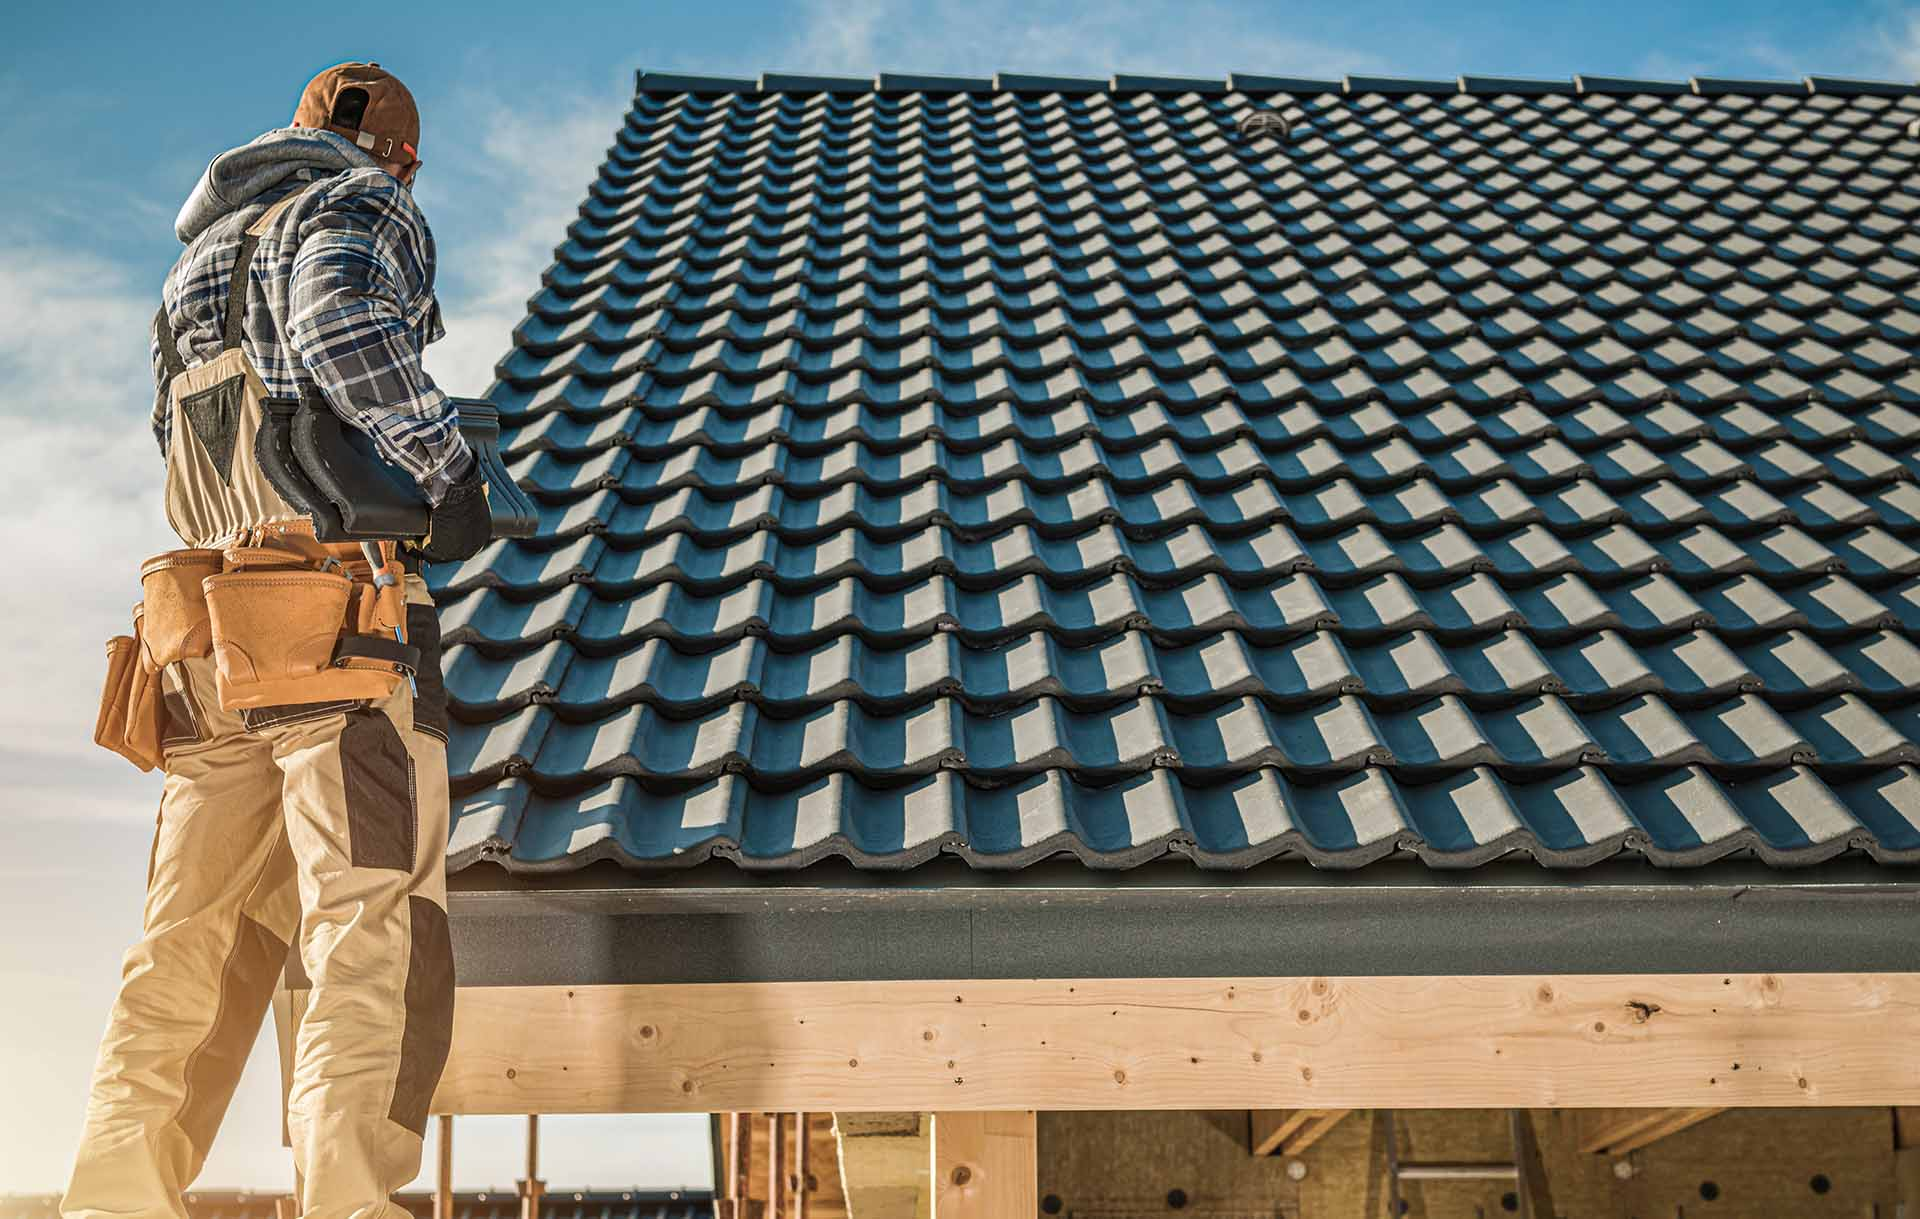 What To Consider When Choosing A New Roofing Material